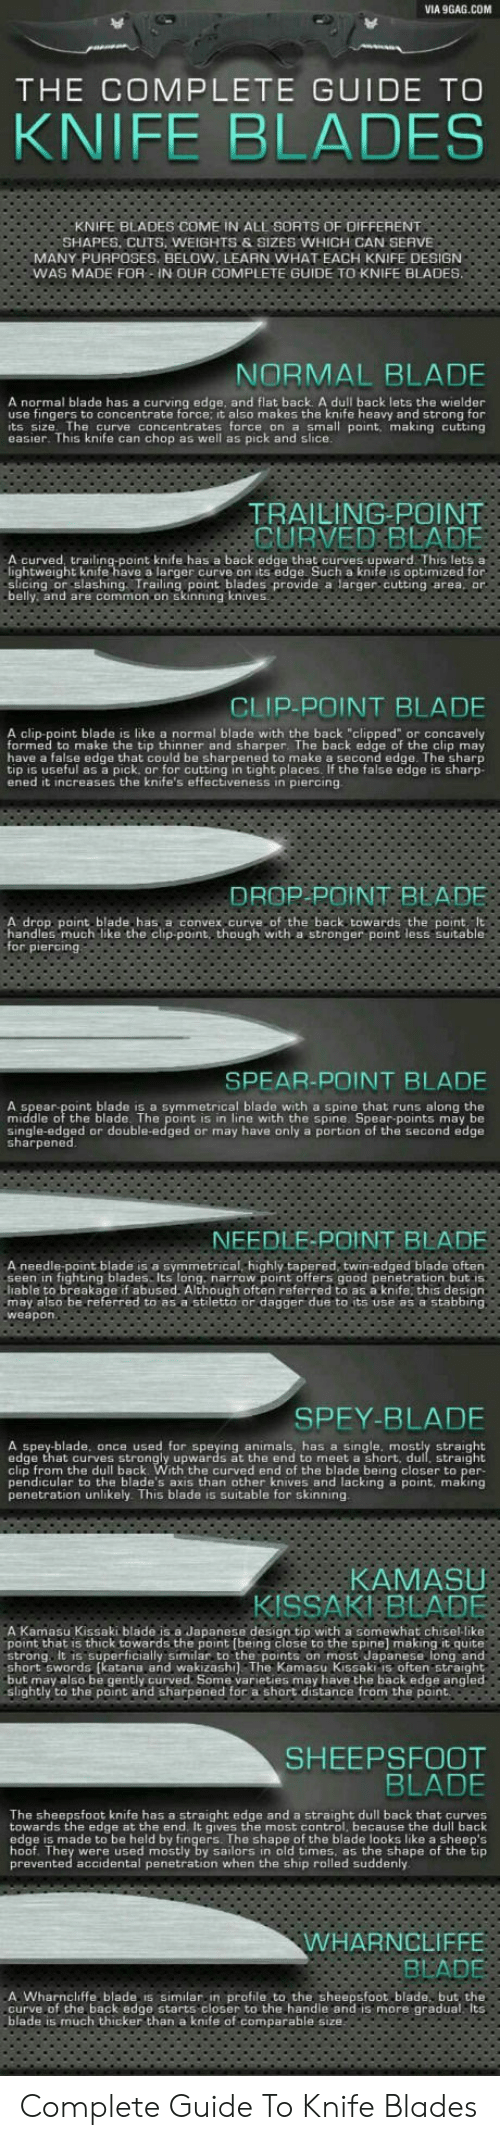 "9gag, Animals, and Blade: VIA 9GAG.COM  THE COMPLETE GUIDE TO  KNIFE BLADES  KNIFE BLADES COME IN ALL SORTS OF OIFFERENT  SHAPES, CUTS, WEIGHTS &SIZES WHICH CAN SERVE  MANY PURPOSES, BELOW, LEARN WHAT EACH KNIFE DESIGN  WAS MADE FOR -IN OUR COMPLETE GUIDE TO KNIFE BLADES.  NORMAL BLADE  A normal blade has a curving edge, and flat back A dull back lets the wielder  use fingers to concentrate force, it also makes the knife heavy and strong for  its size The curve concentrates force on a small point, making cutting  easier. This knife can chop as well as pick and slice.  TRAILING POINT  CURVED BLADE  A curved, trailing-point knife has a back edge that curves upward This lets a  lightweight knife have a larger curve on its edge Such a knife is optimized for  slicing or slashing Trailing point blades provide a larger cutting area, or  belly and are common on skinning knives  CLIP-POINT BLADE  A clip-point blade is like a normal blade with the back ""clipped"" or concavely  formed to make the tip thinner and sharper. The back edge of  have a false edge that could be sharpened to make a second edge. The sharp  tip is useful as a pick, or for cutting in tight places. If the false edge is sharp-  ened it increases the knife's effectiveness in piercing  clip may  the  DROP POINT BLADE  A drop point blade has a convex.curve of the back towards the point It  handles much like the clip-point, though with a stronger point less suitable  for piercing  SPEAR-POINT BLADE  A spear-point blade is a symmetrical blade with a spine that runs along the  middle of the blade. The point is in line with the spine. Spear-points may be  single-edged or double-edged or may have only a portion of the second edge  sharpened  NEEDLE-POINT BLADE  A needle-point blade is a symmetrical,highly tapered, twin-edged blade often  seen in fighting blades Its long. narrow point offers good penetration but is  liable to breakage if abused. Although often referred to as a knife, this design  may also be referred to as a stiletto or dagger due to its use as a stabbing  weapon.  SPEY-BLADE  A spey-blade, once used for speying animals, has a single. mu straight  edge that curves strongly upwards at the end to meet a short,  clip from the dull back. With the curved end of the blade being closer to per-  pendicular to the blade's axis than other knives and lacking a point, making  penetration unlikely. This blade is suitable for skinning  straight  KAMASU  KISSAKI BLADE  A Kamasu Kissaki blade is a Japanese design tip with a somewhat chisel-like  point that is thick towards the point (being close to the spine) making it quite  strong. It is superficially similar to the points on most Japanese long and  short swords (katana and wakizashi) The Kamasu Kissaki is often straight  but may also be gently curved Some varieties may have the back edge angled  slightly to the point and sharpened for a short distance from the point  SHEEPSFOOT  BLADE  The sheepsfoot knife has a straight edge and a straight dull back that curves  towards the edge at the end. It gives the most control, because the dull back  edge is made to be held by fingers. The shape of the blade looks like a sheep's  hoof. They were used mostly by sailors in old times, as the shape of the tip  prevented accidental penetration when the ship rolled suddenly  WHARNCLIFFE  BLADE  A. Wharncliffe blade is similar.in profile to the sheepsfoot blade, but the  curve of the back edge starts closer to the handle and is more gradual Its  blade is much thicker than a knife of comparable size Complete Guide To Knife Blades"